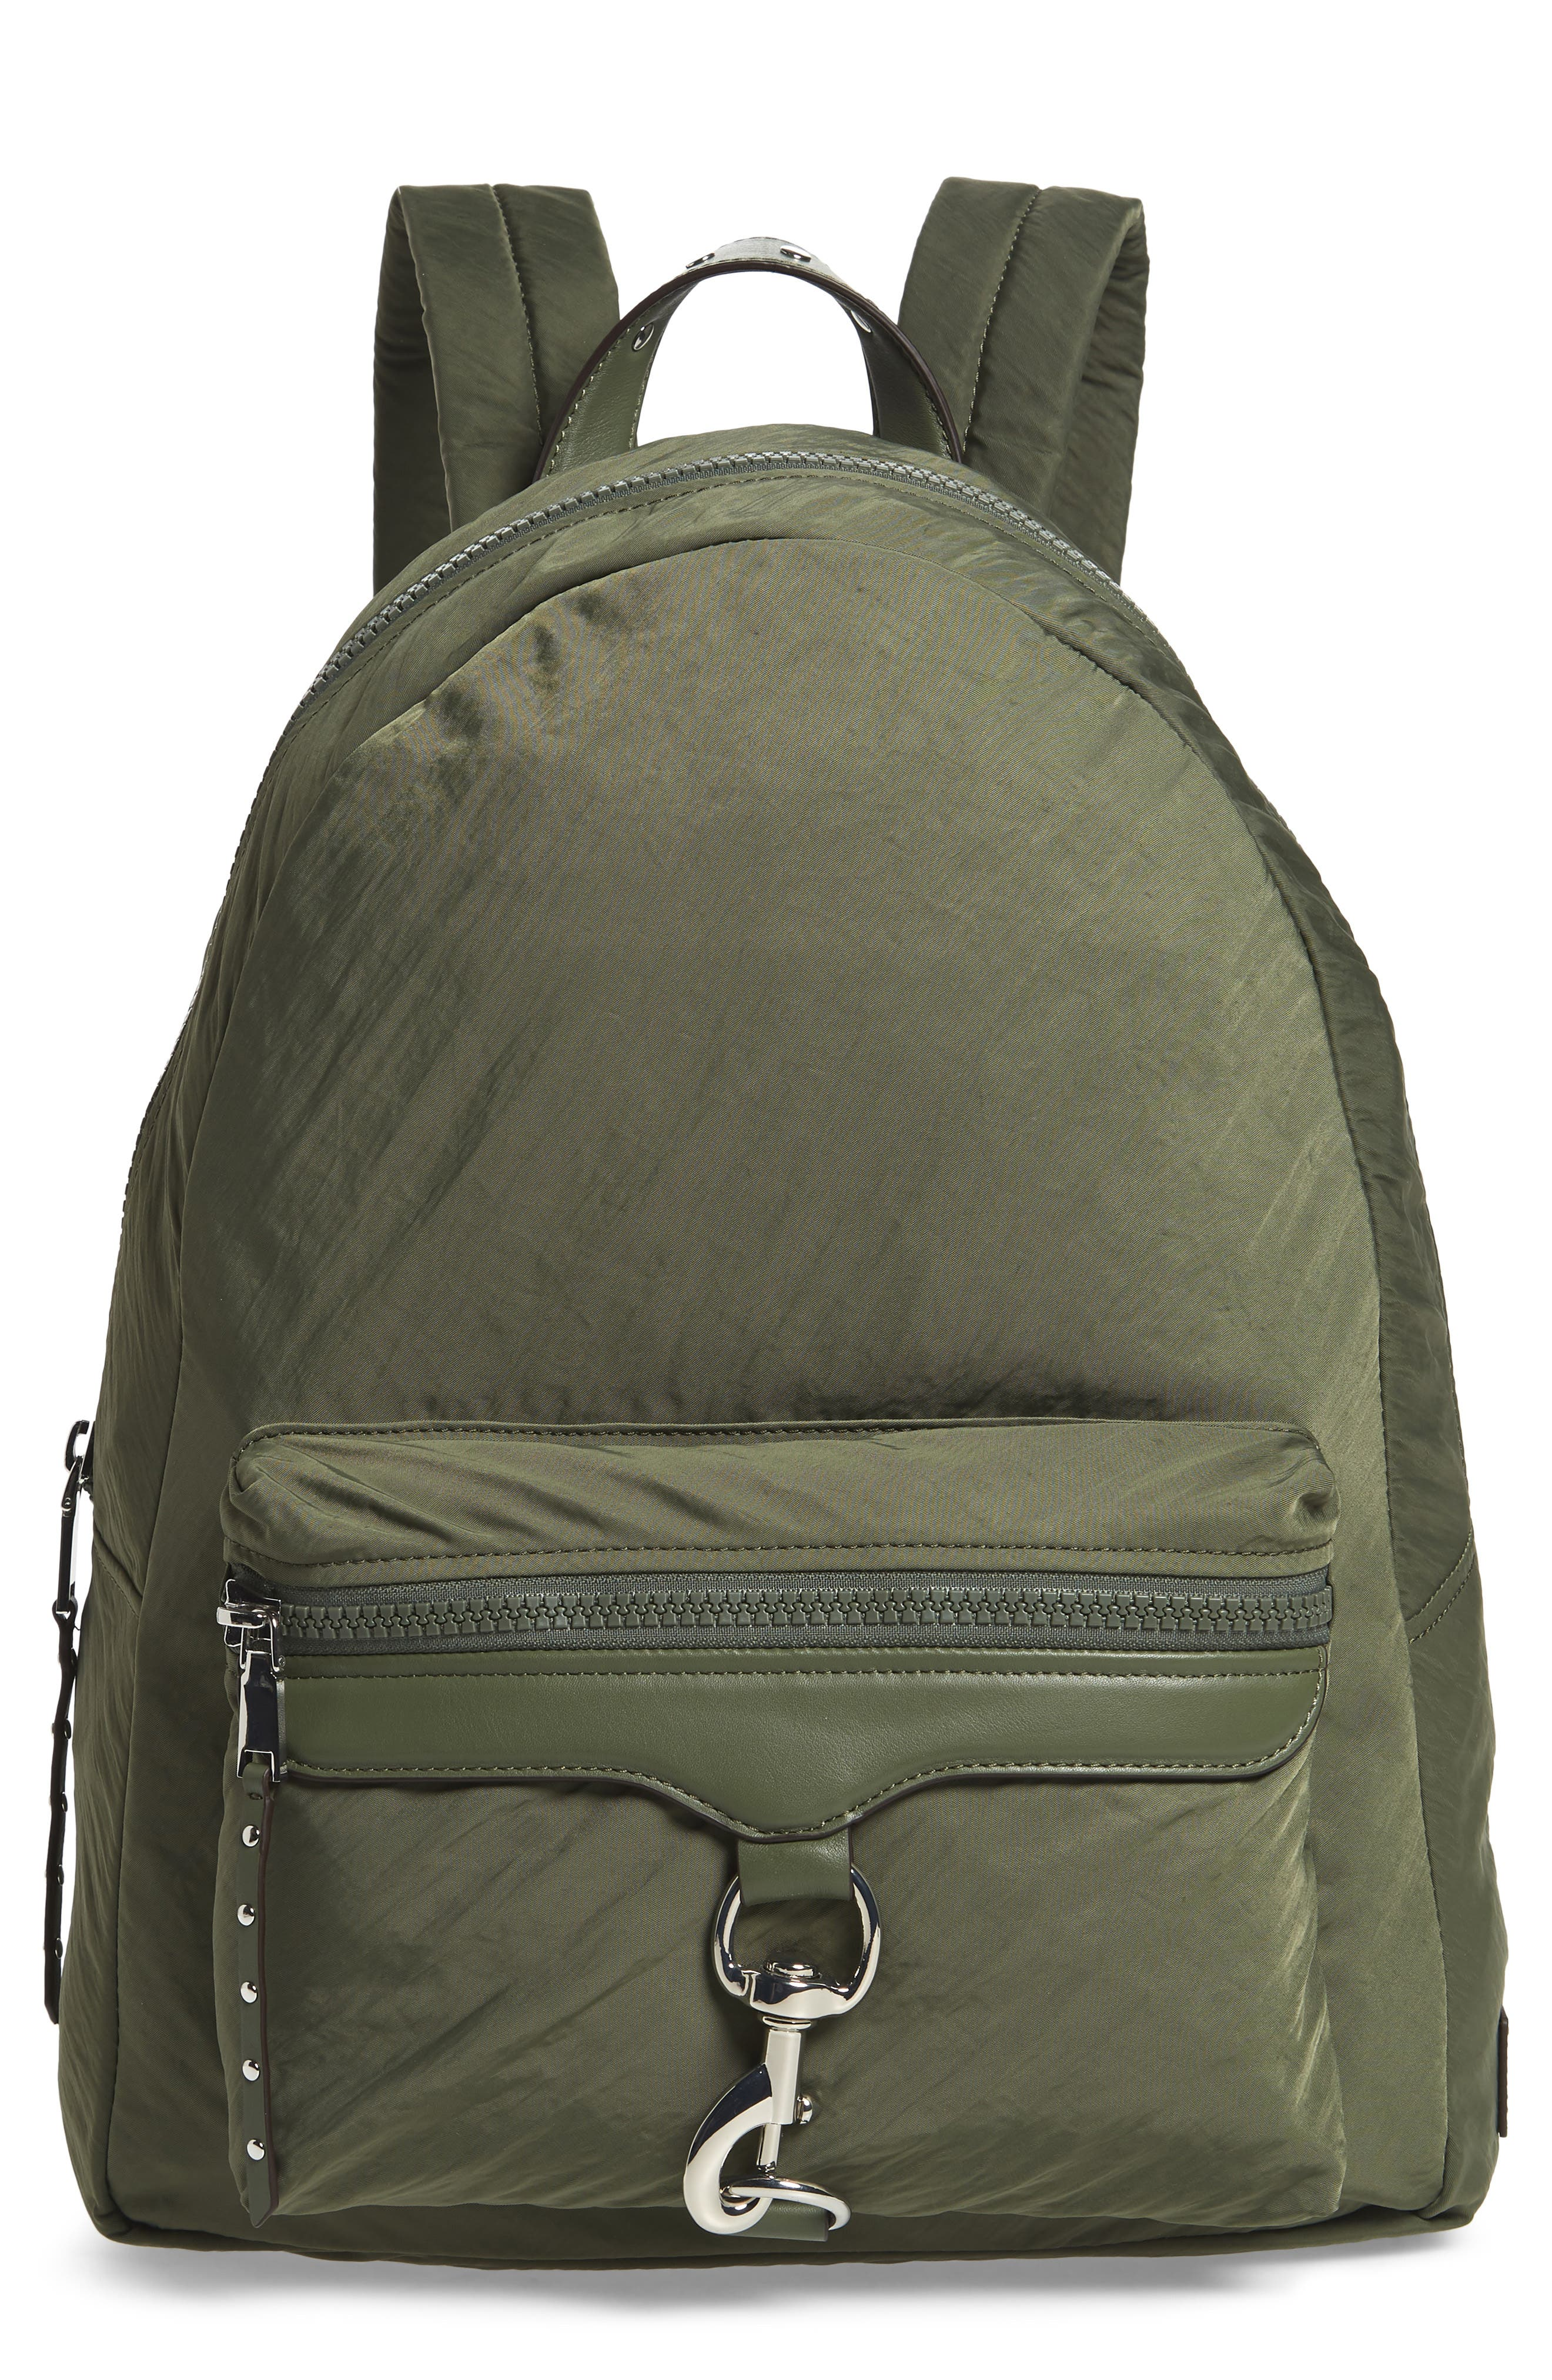 REBECCA MINKOFF, Always On MAB Backpack, Main thumbnail 1, color, OLIVE